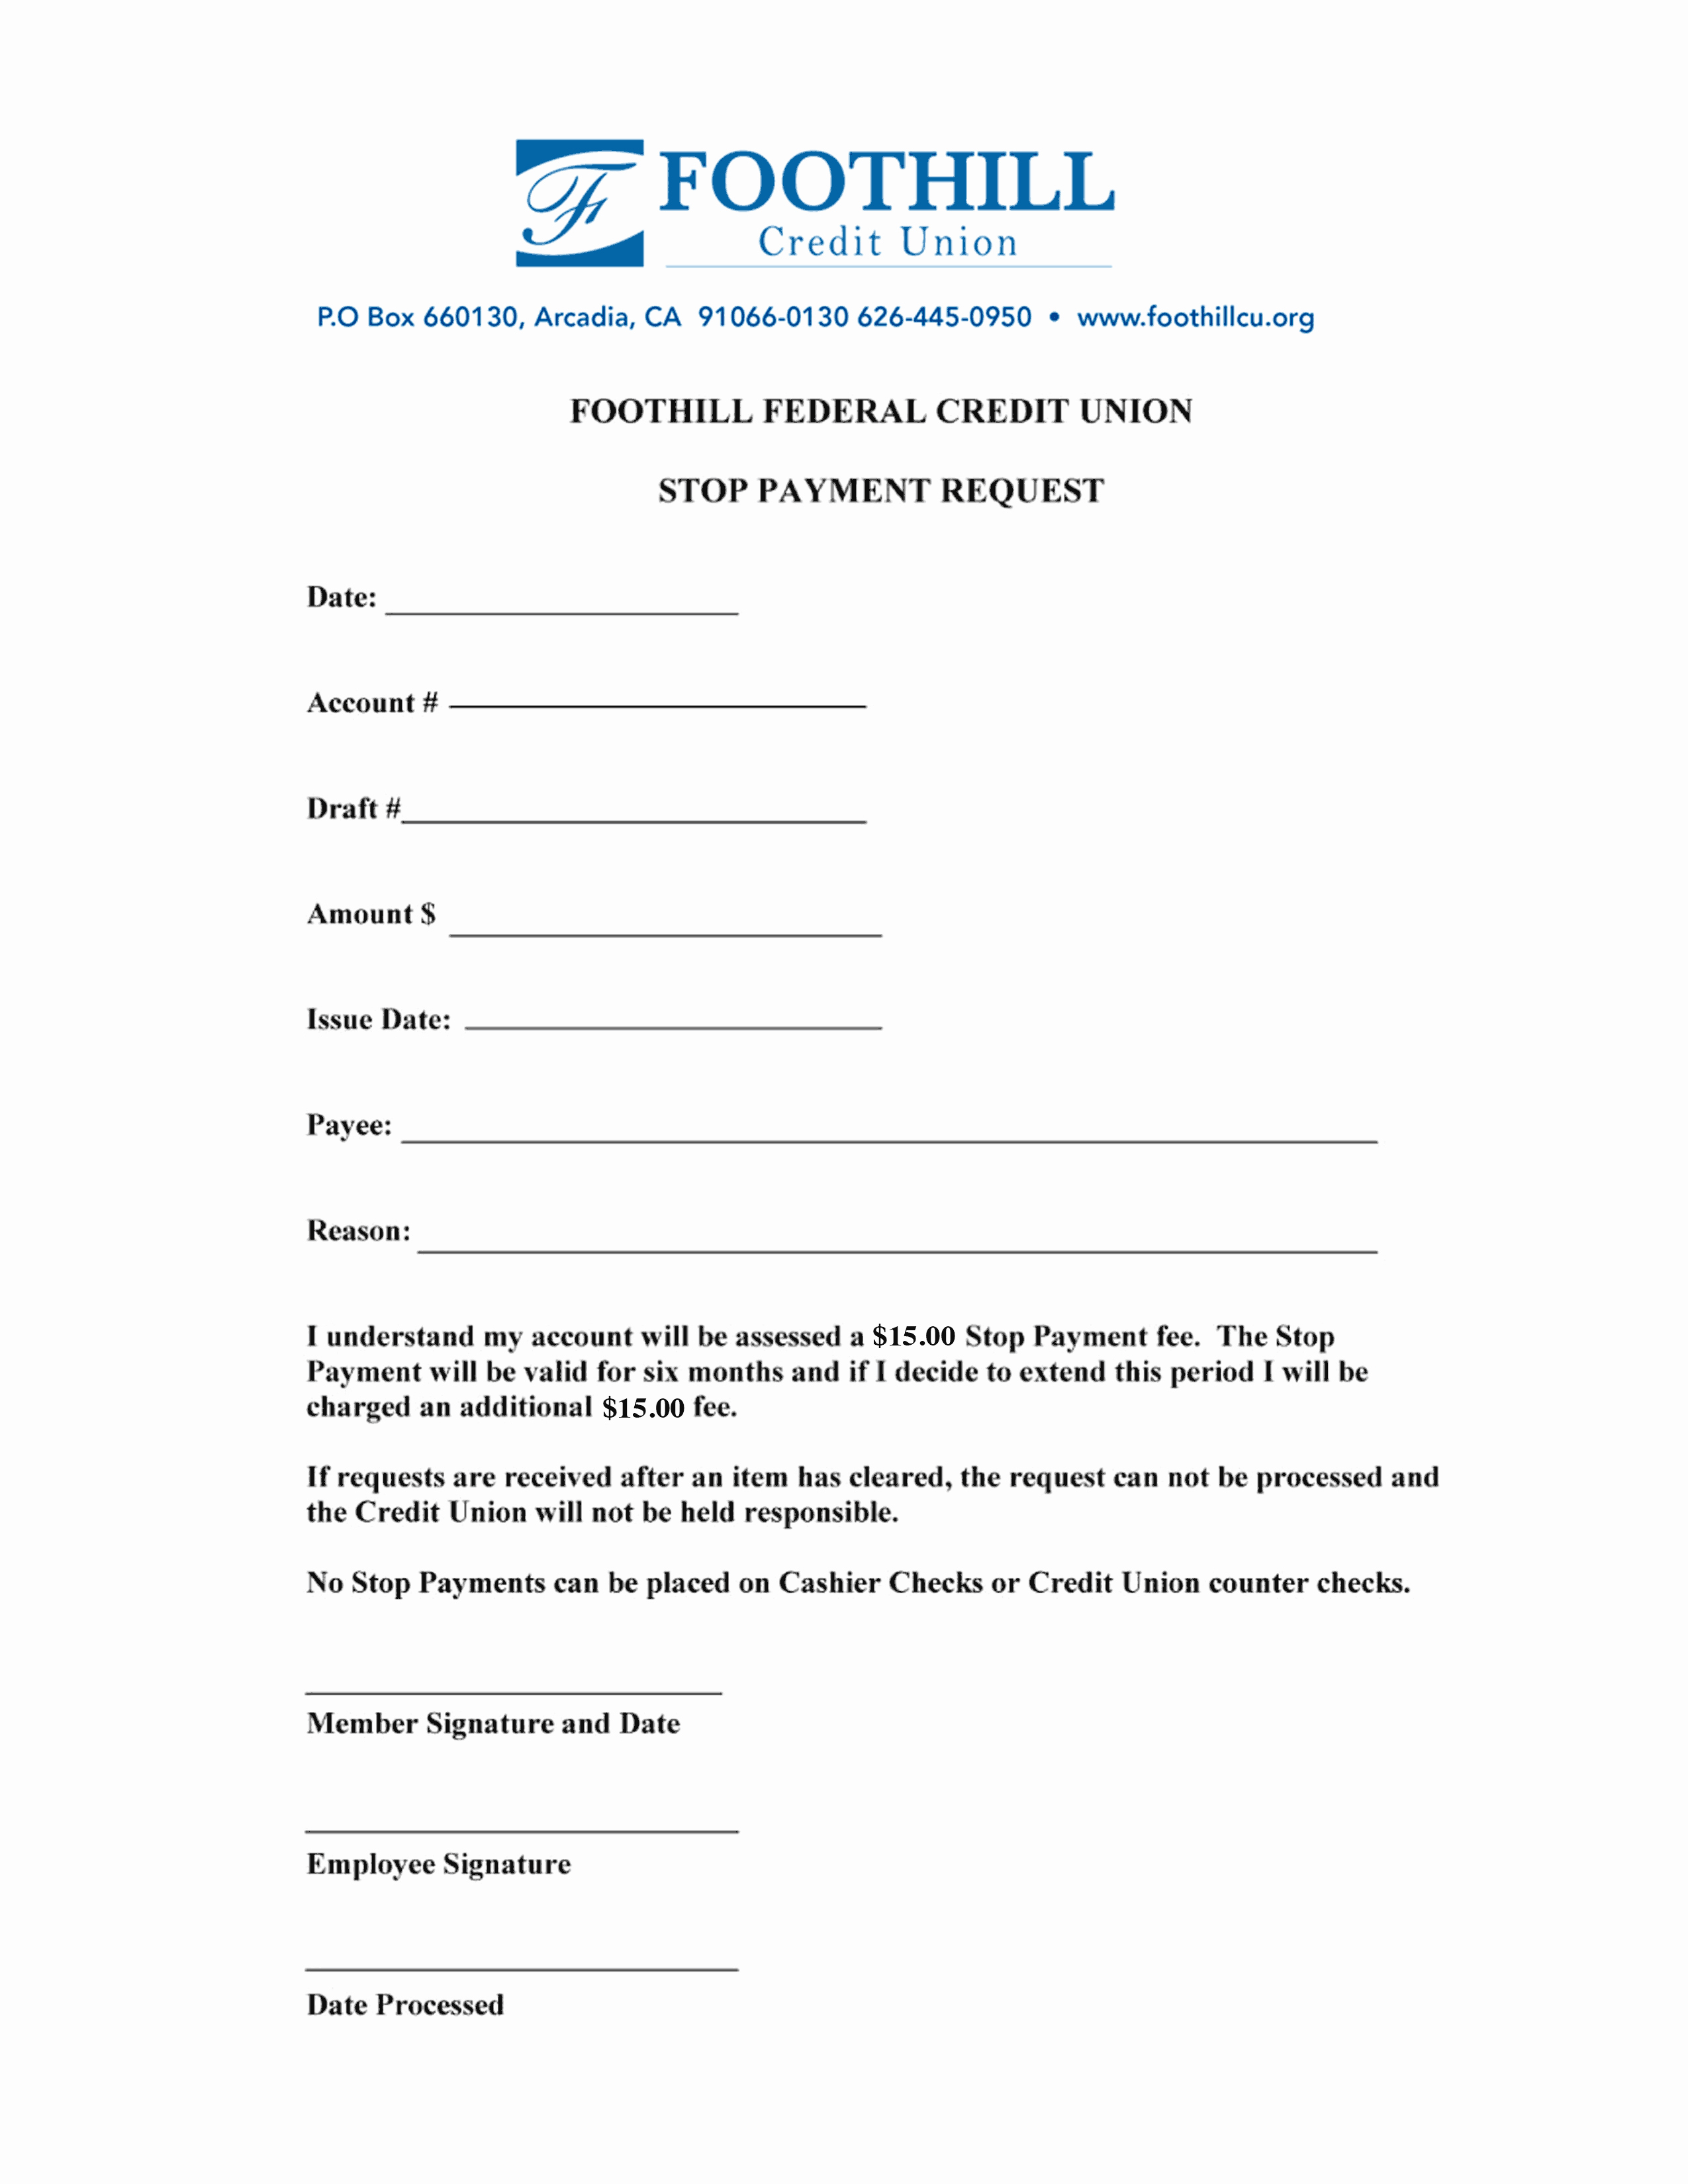 Payment Request form Template Unique Foothill Printable forms Foothill Credit Union